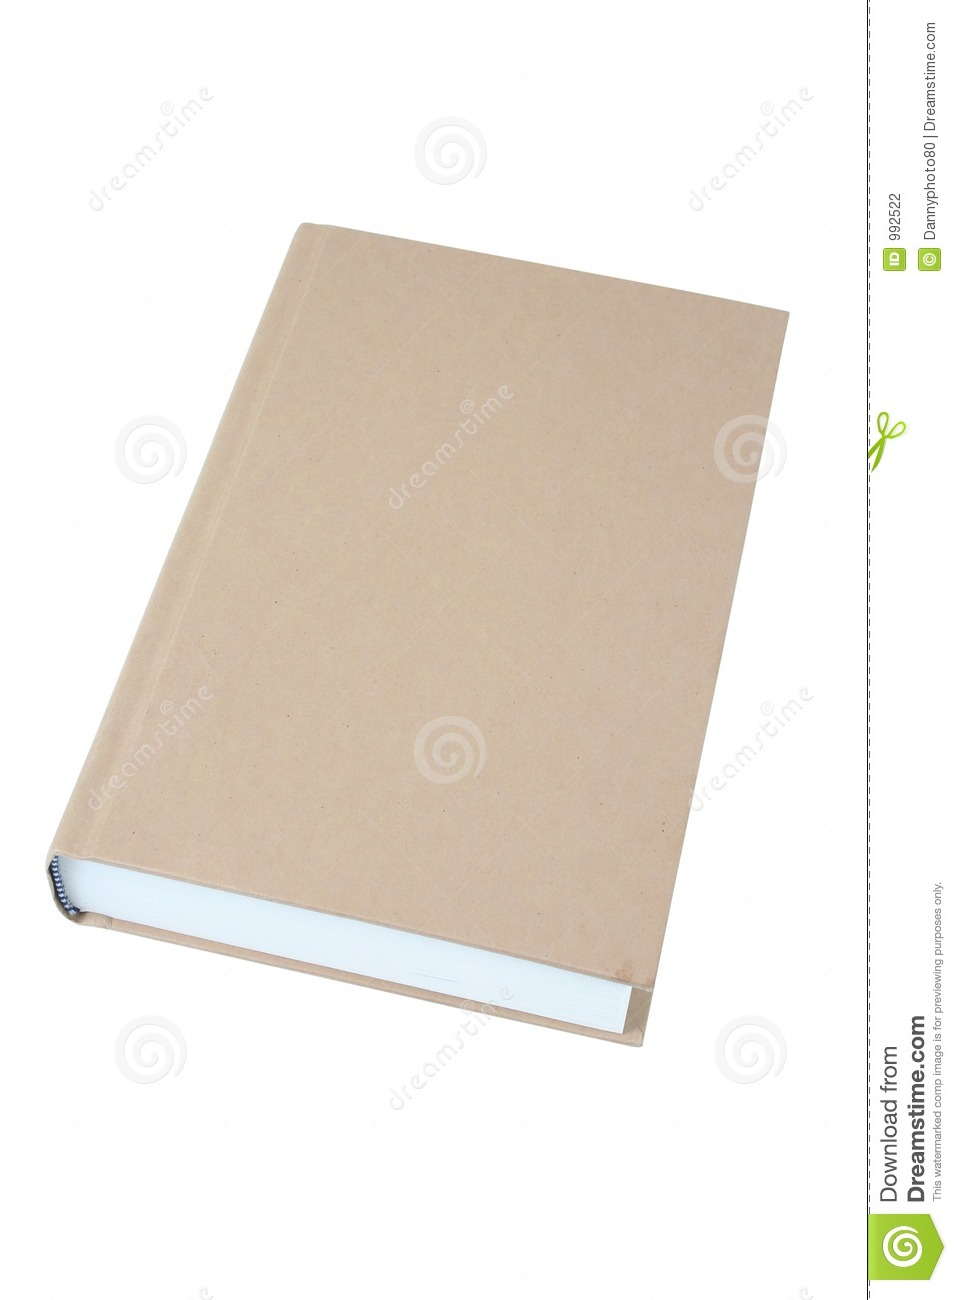 generic book stock photo image of cover spine load borrow 992522